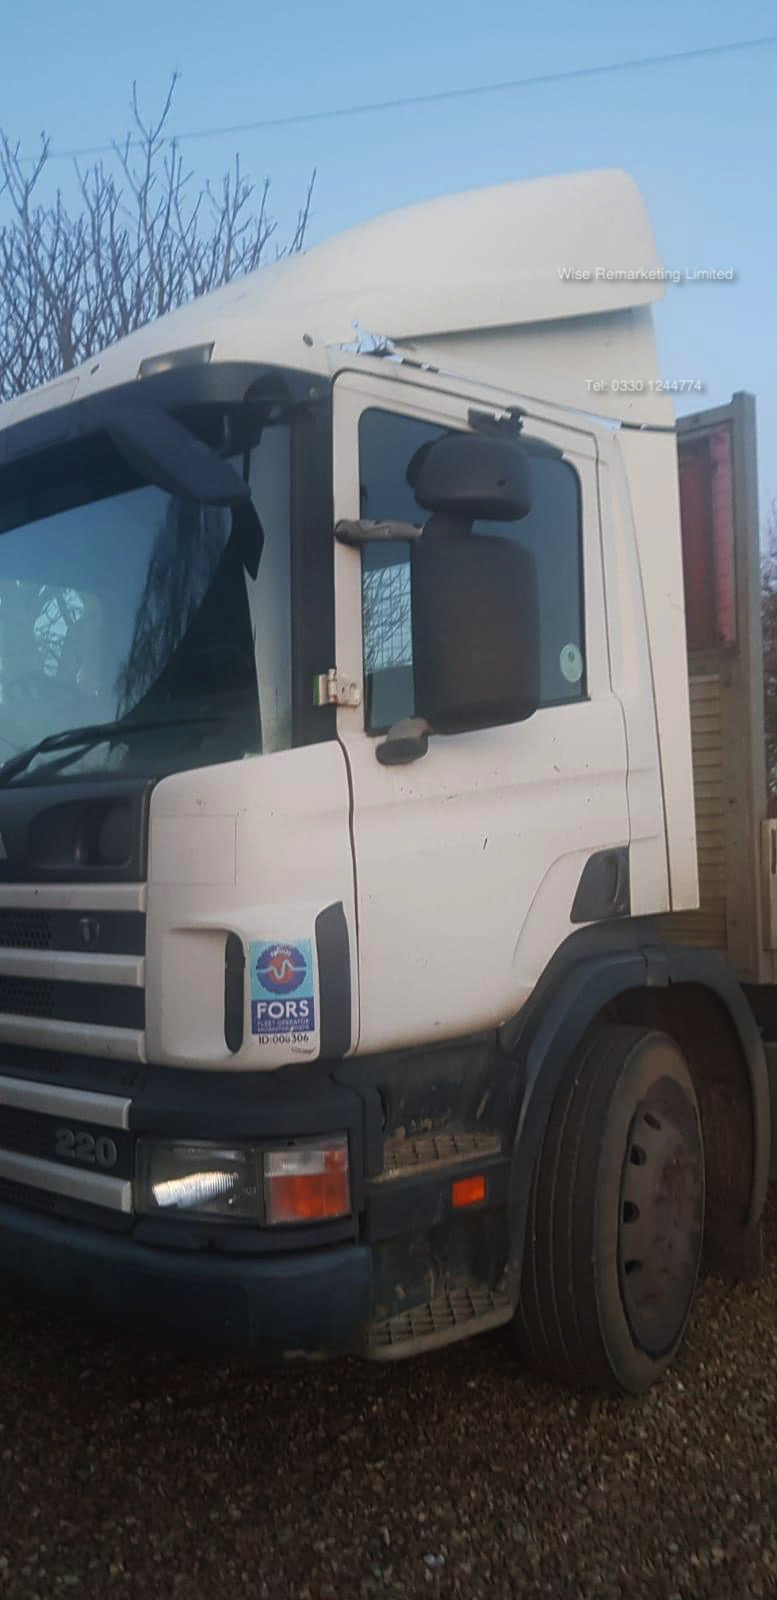 (Reserve Met) Scania 94d.220 18 Tonne 4x2 Flat Bed Lorry - W Reg 2000 Year - SAVE 20% NO VAT - Image 21 of 30